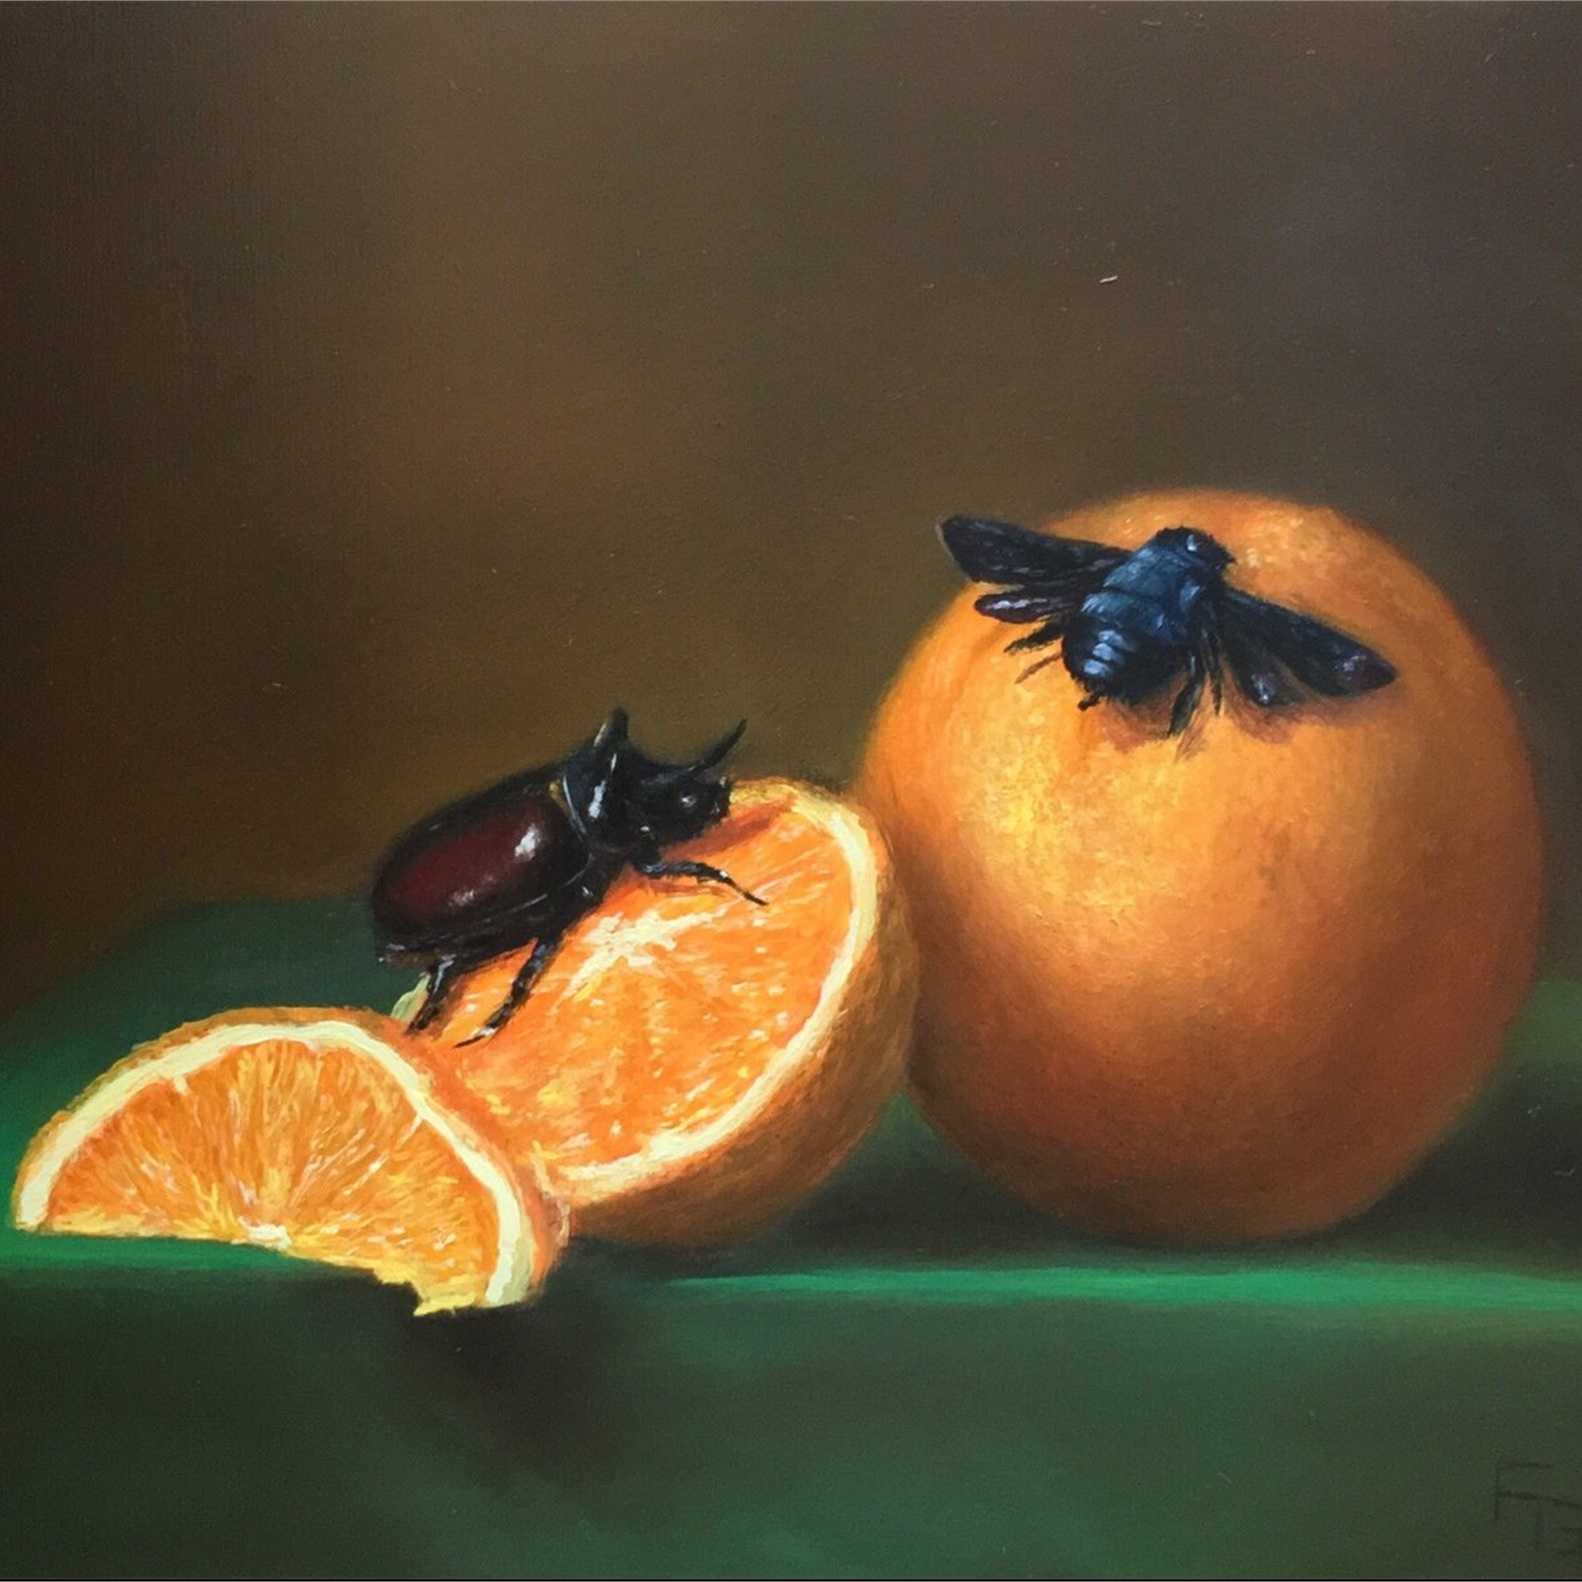 Still Life with Oranges, Rhino Beetle, and Carpenter Bee -